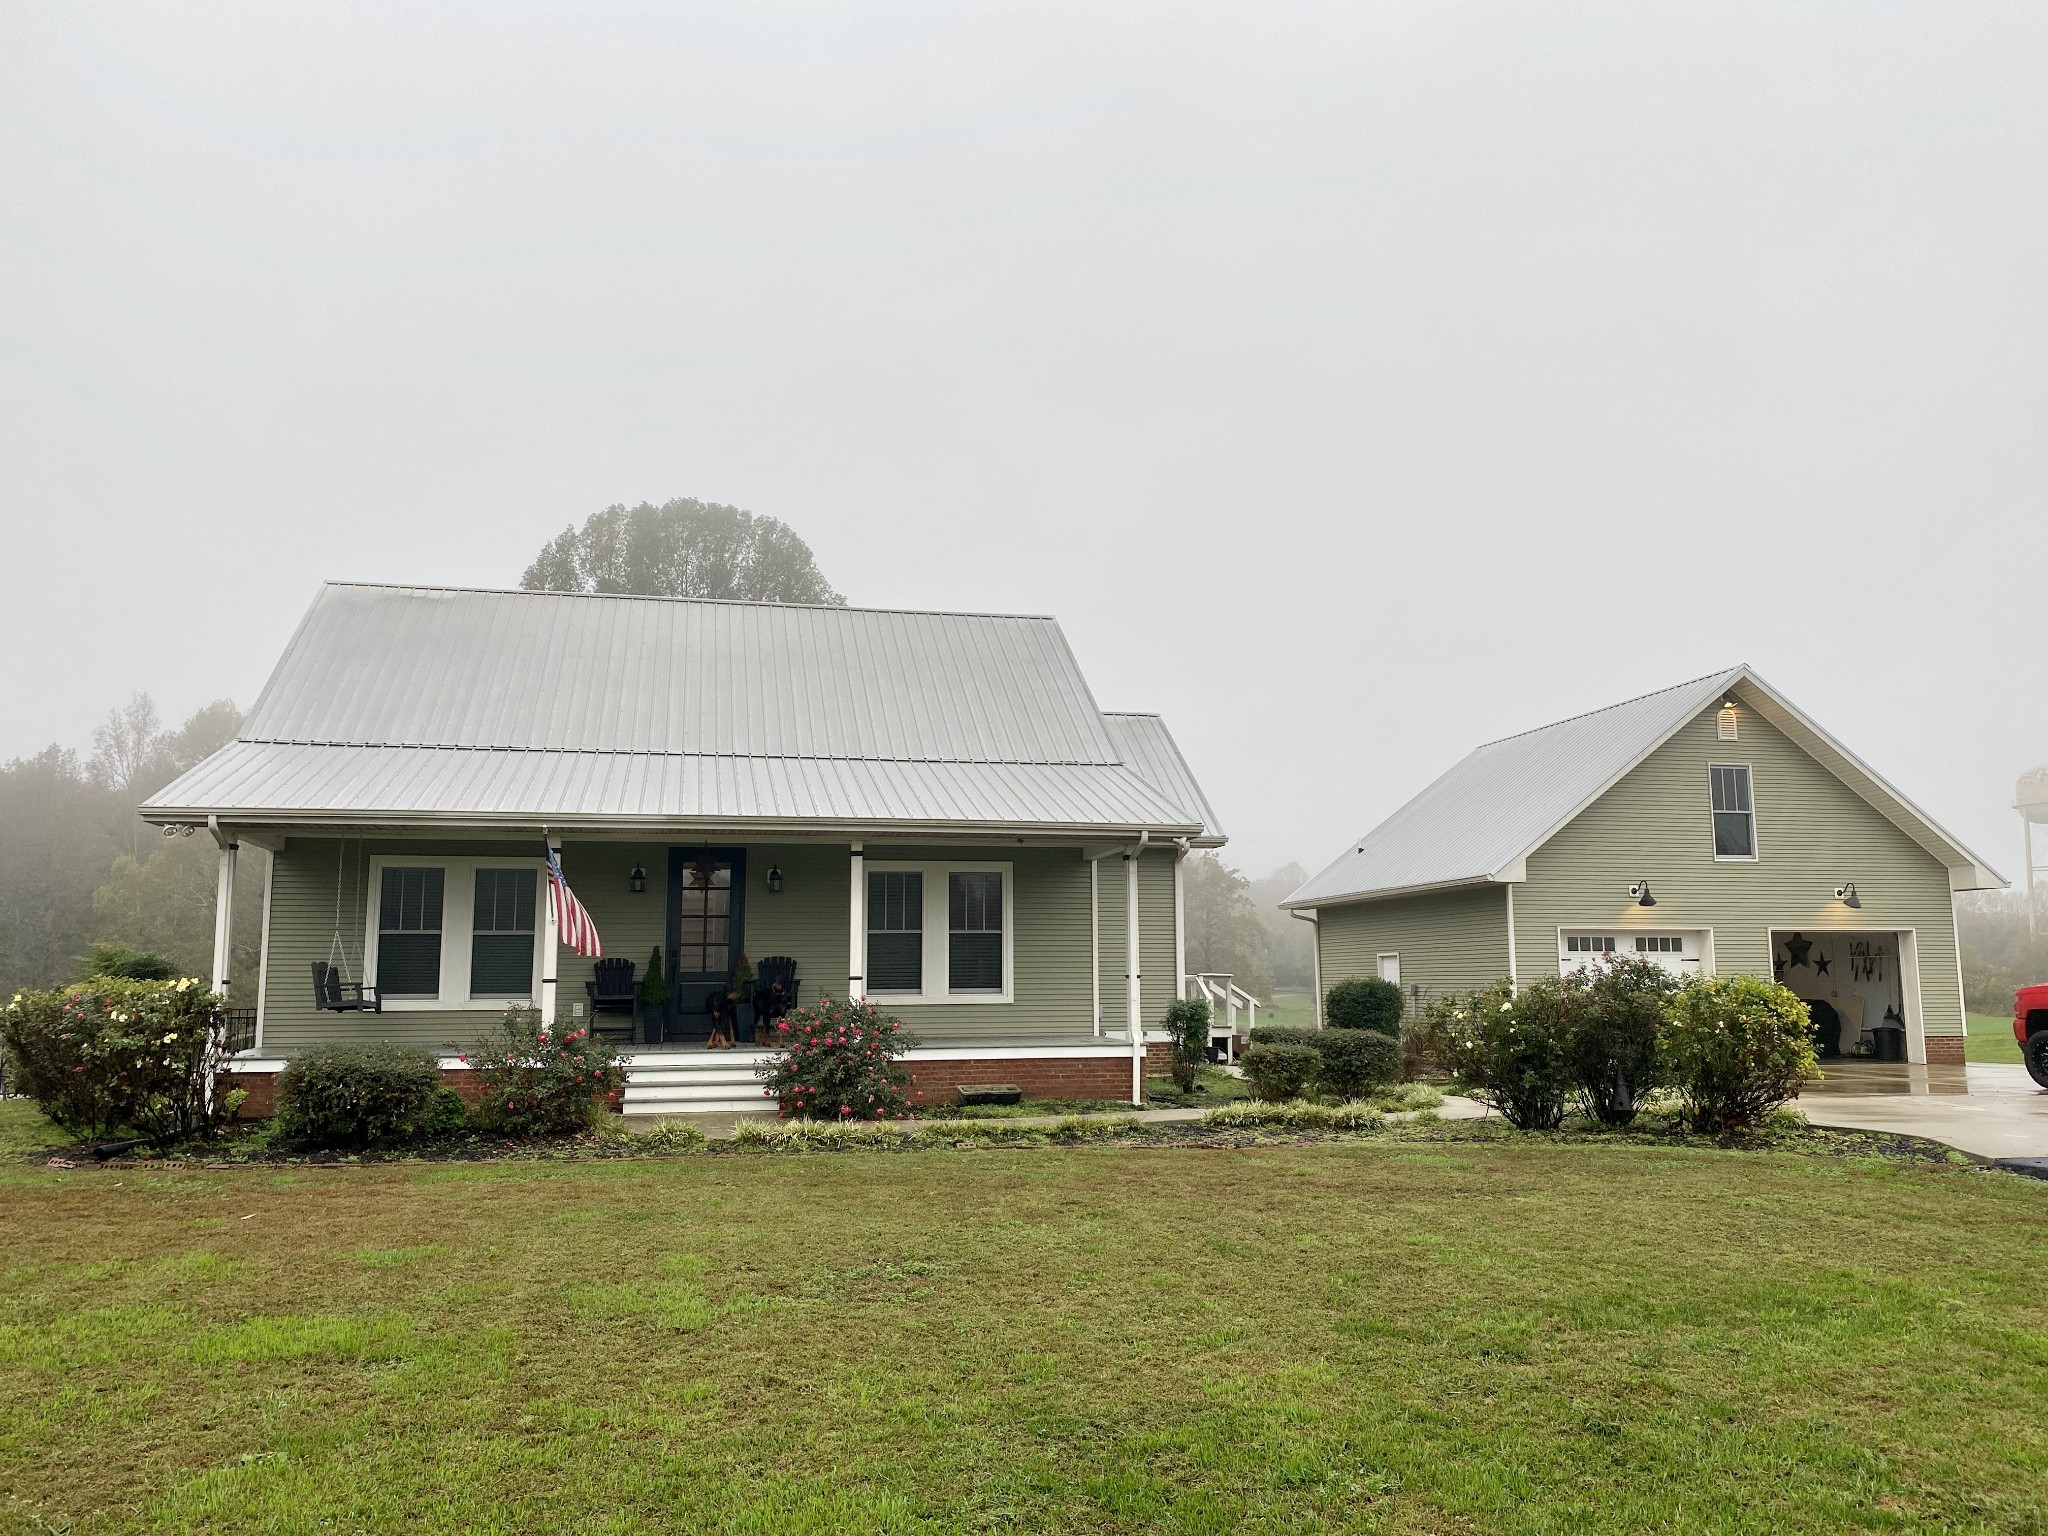 Details for 307 N Scenic Rd, Monteagle, TN 37356